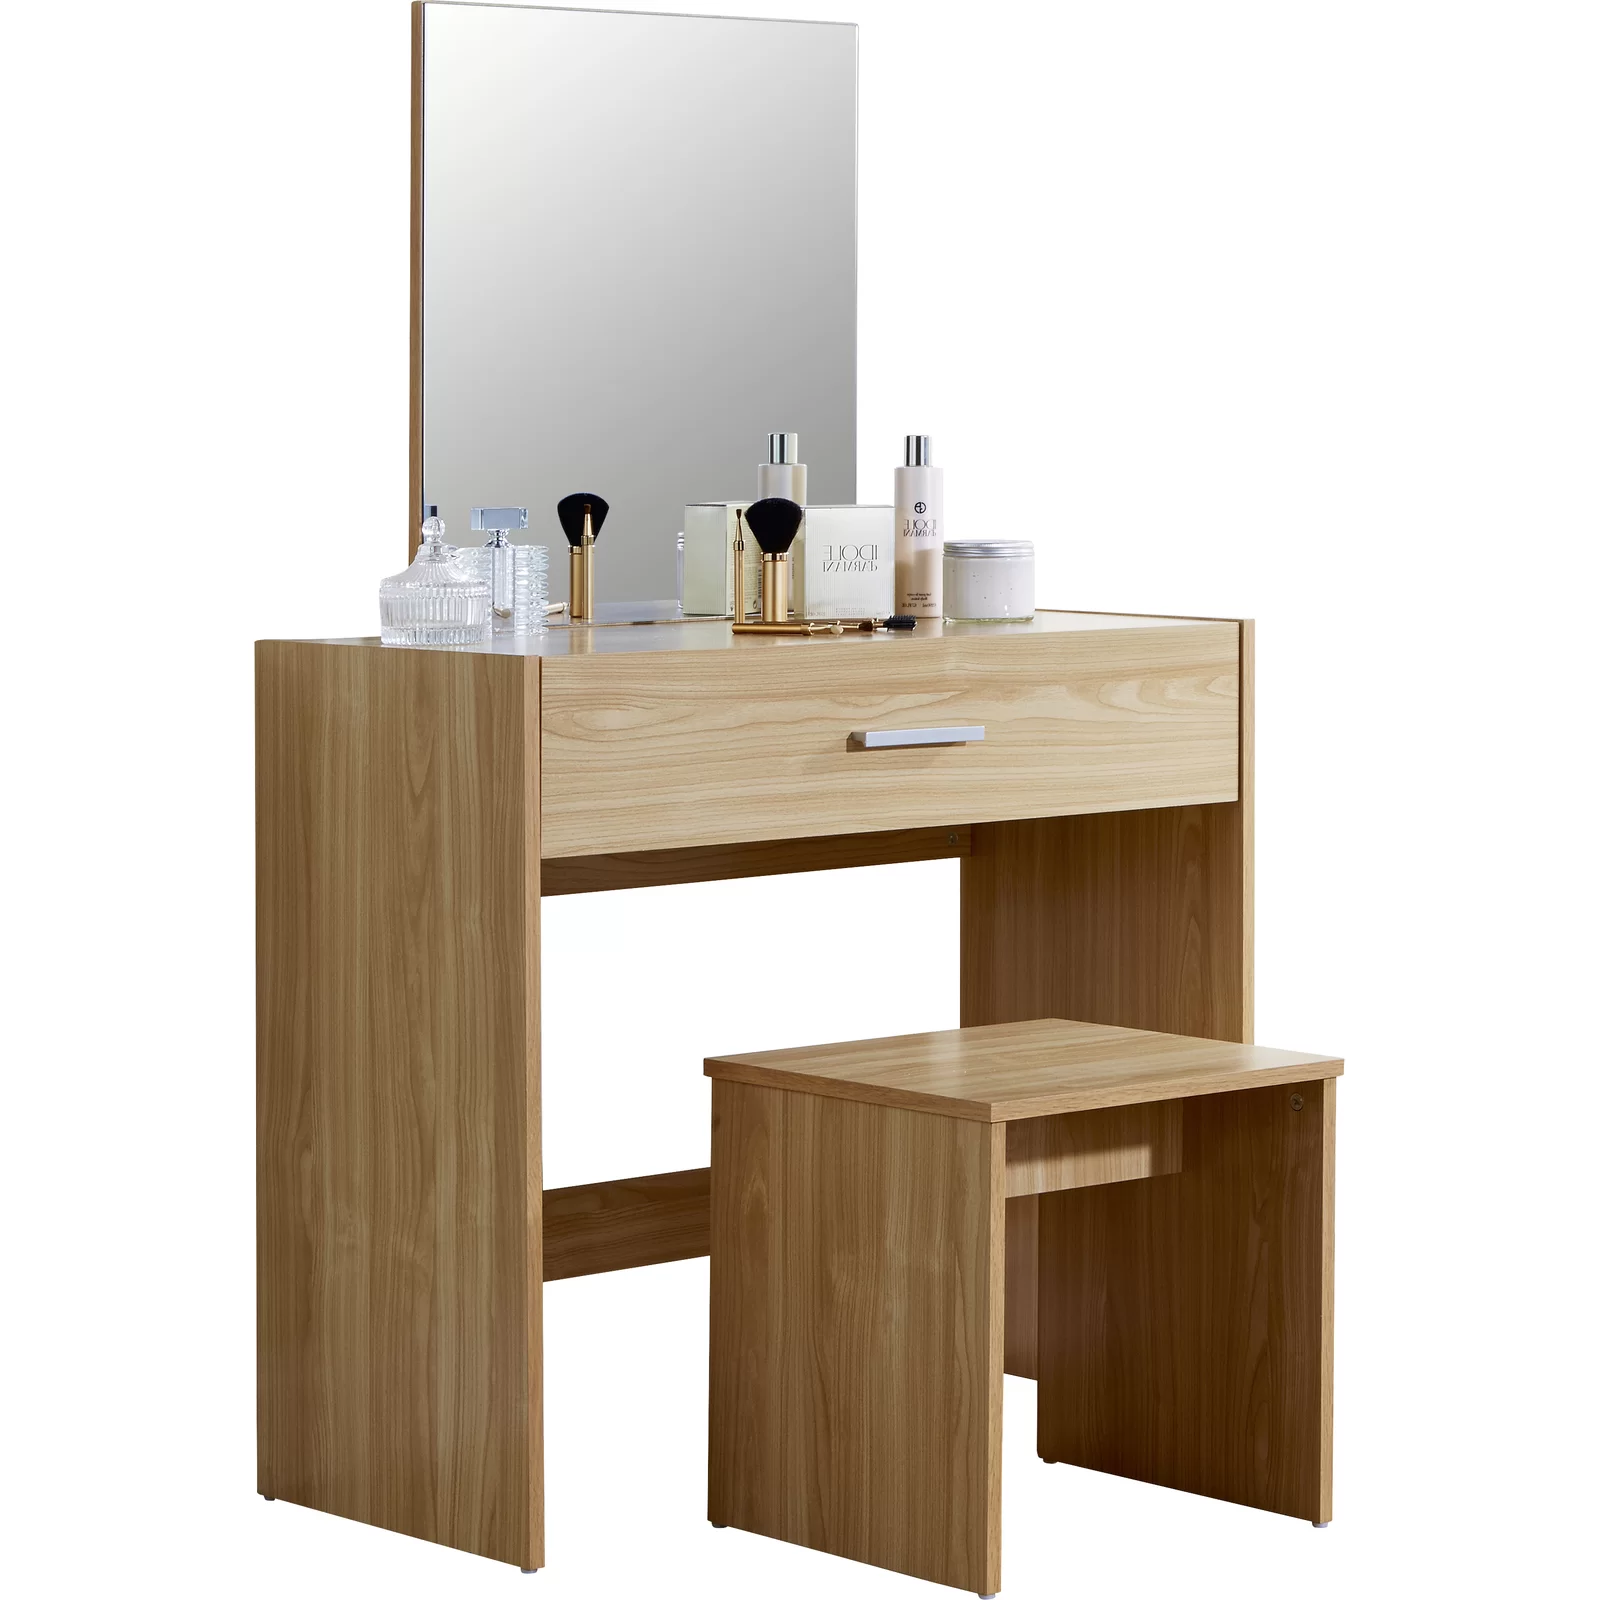 Renewable Design for White Shake Wood Kitchen Cabinets - Dressing Table With Mirror Makeup Table Dresser Table – Joysource